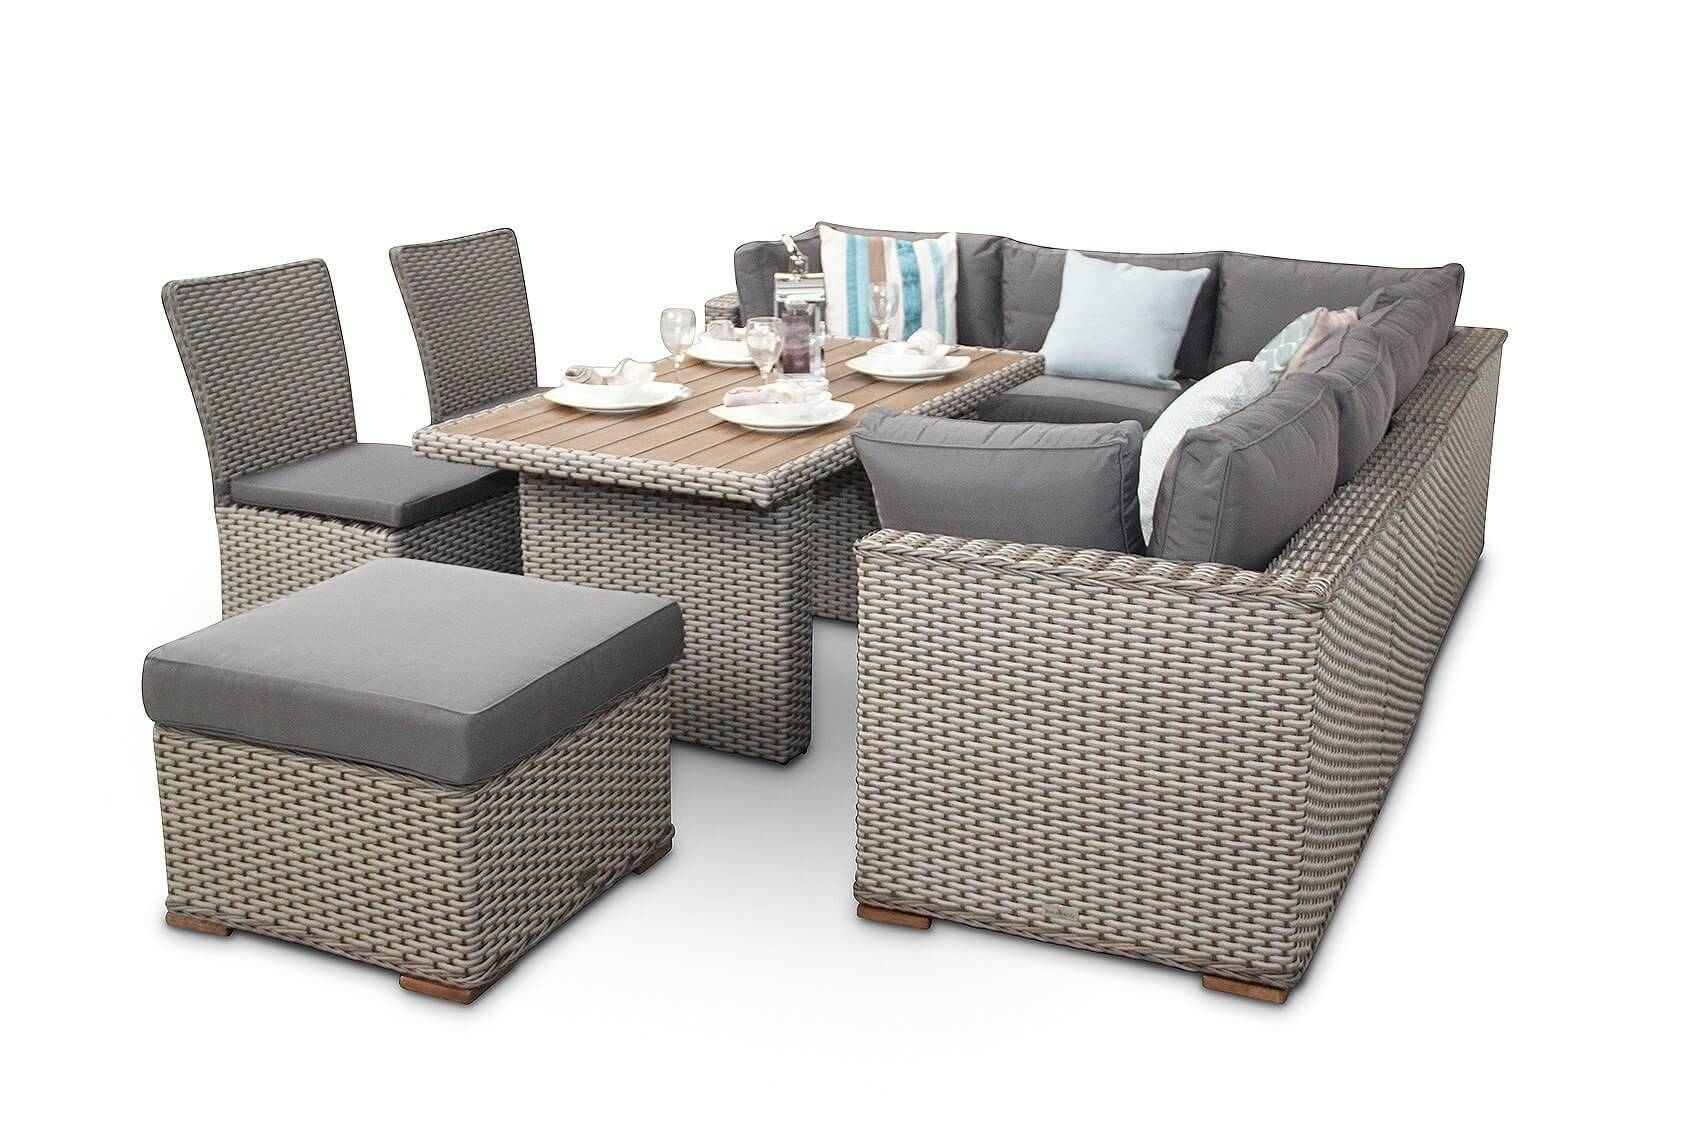 Manchester 10Pc Modular Rattan Sofa Dining Corner Sofa Set With in Corner Sofa Chairs (Image 21 of 30)